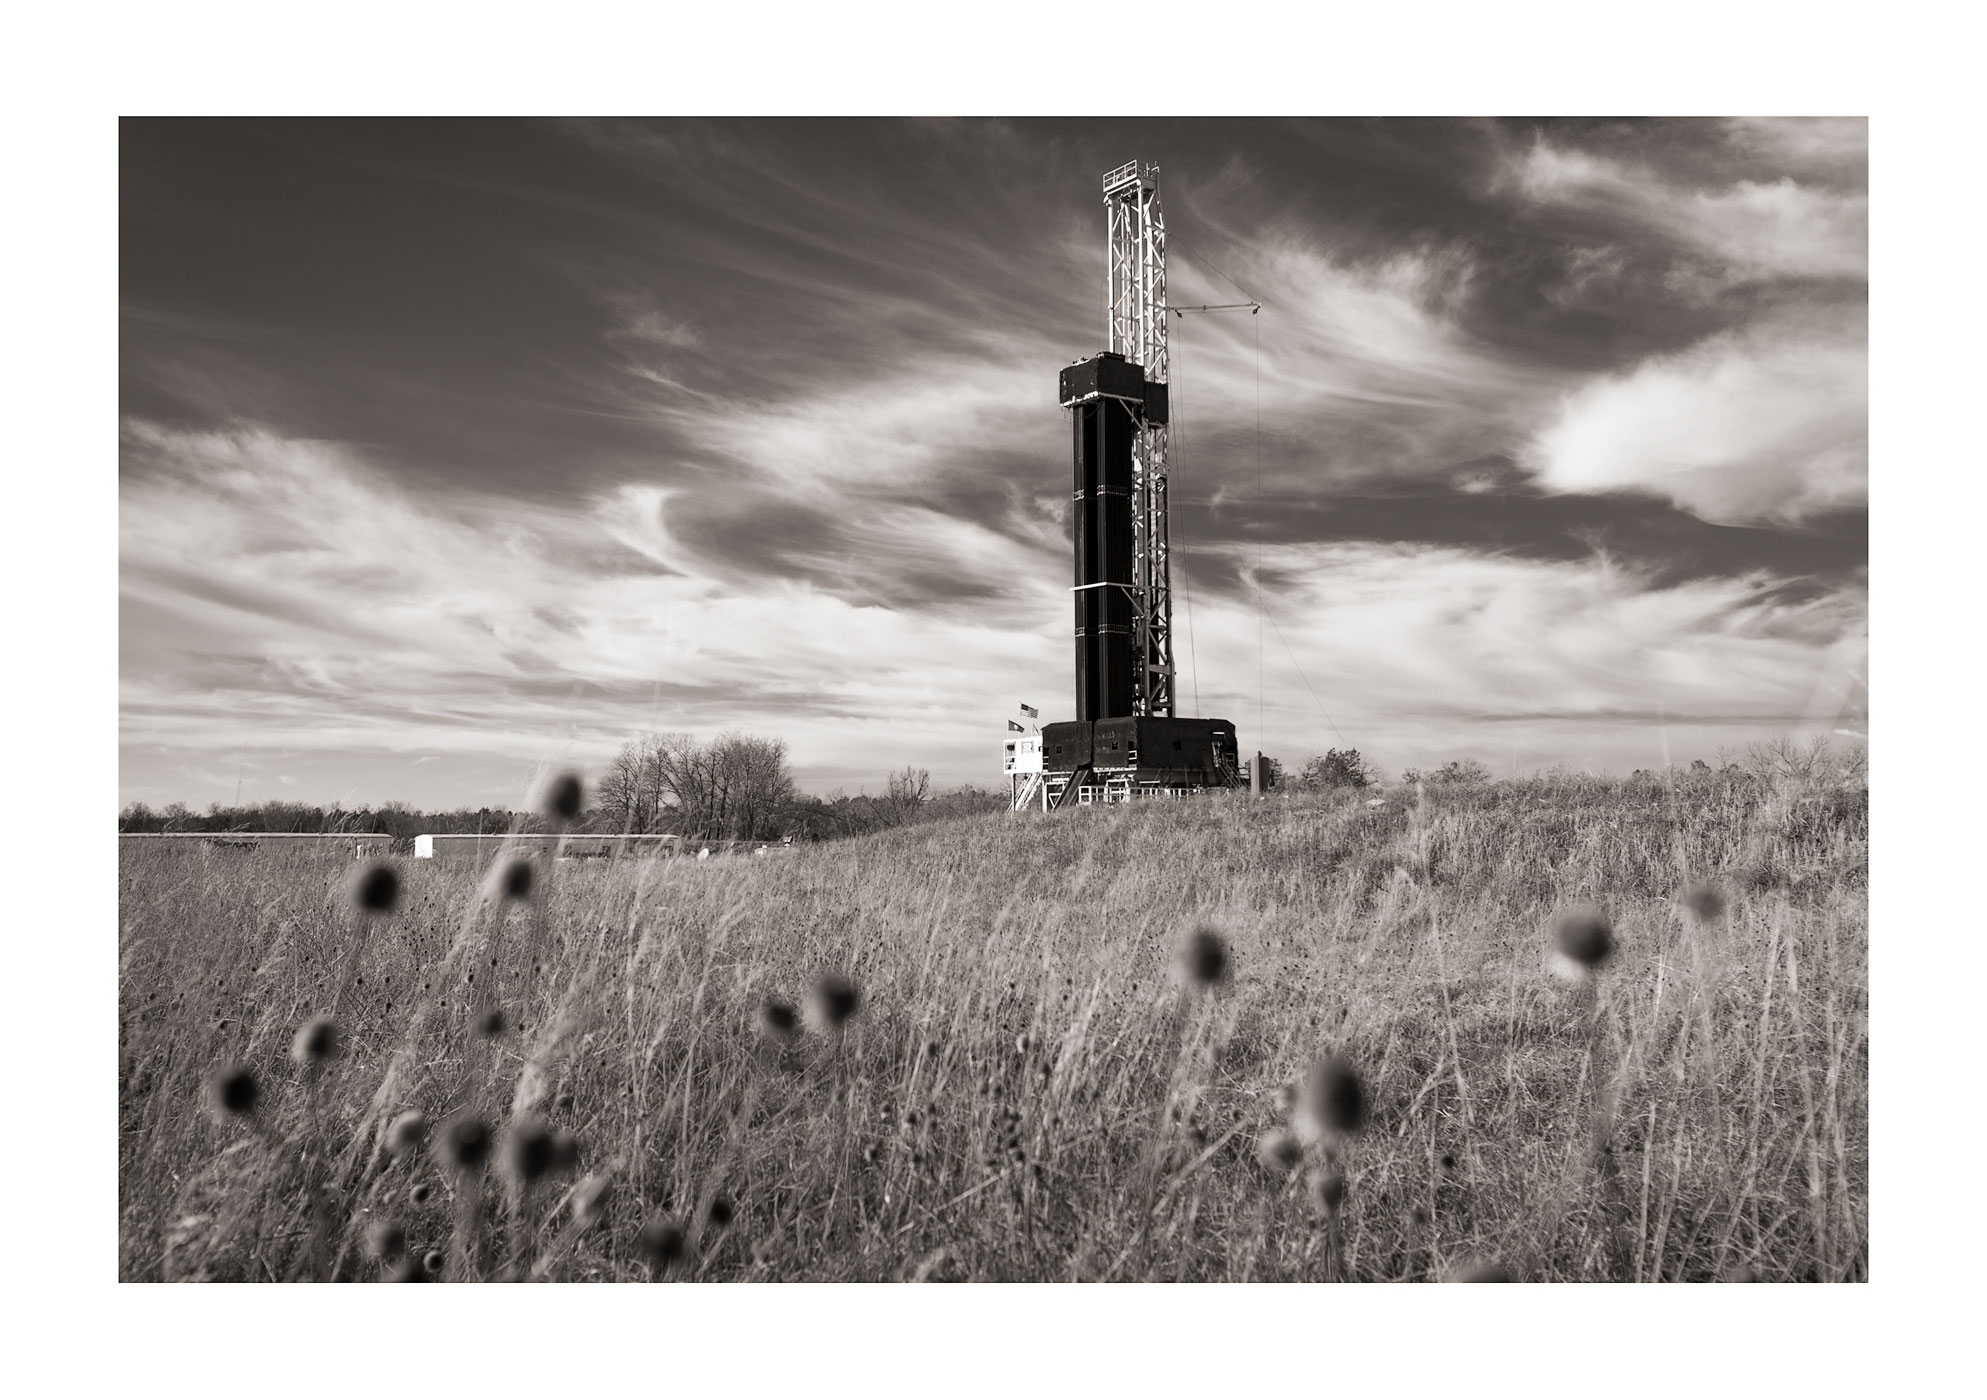 DRILLING RIG LAND DERRICK ENERGY